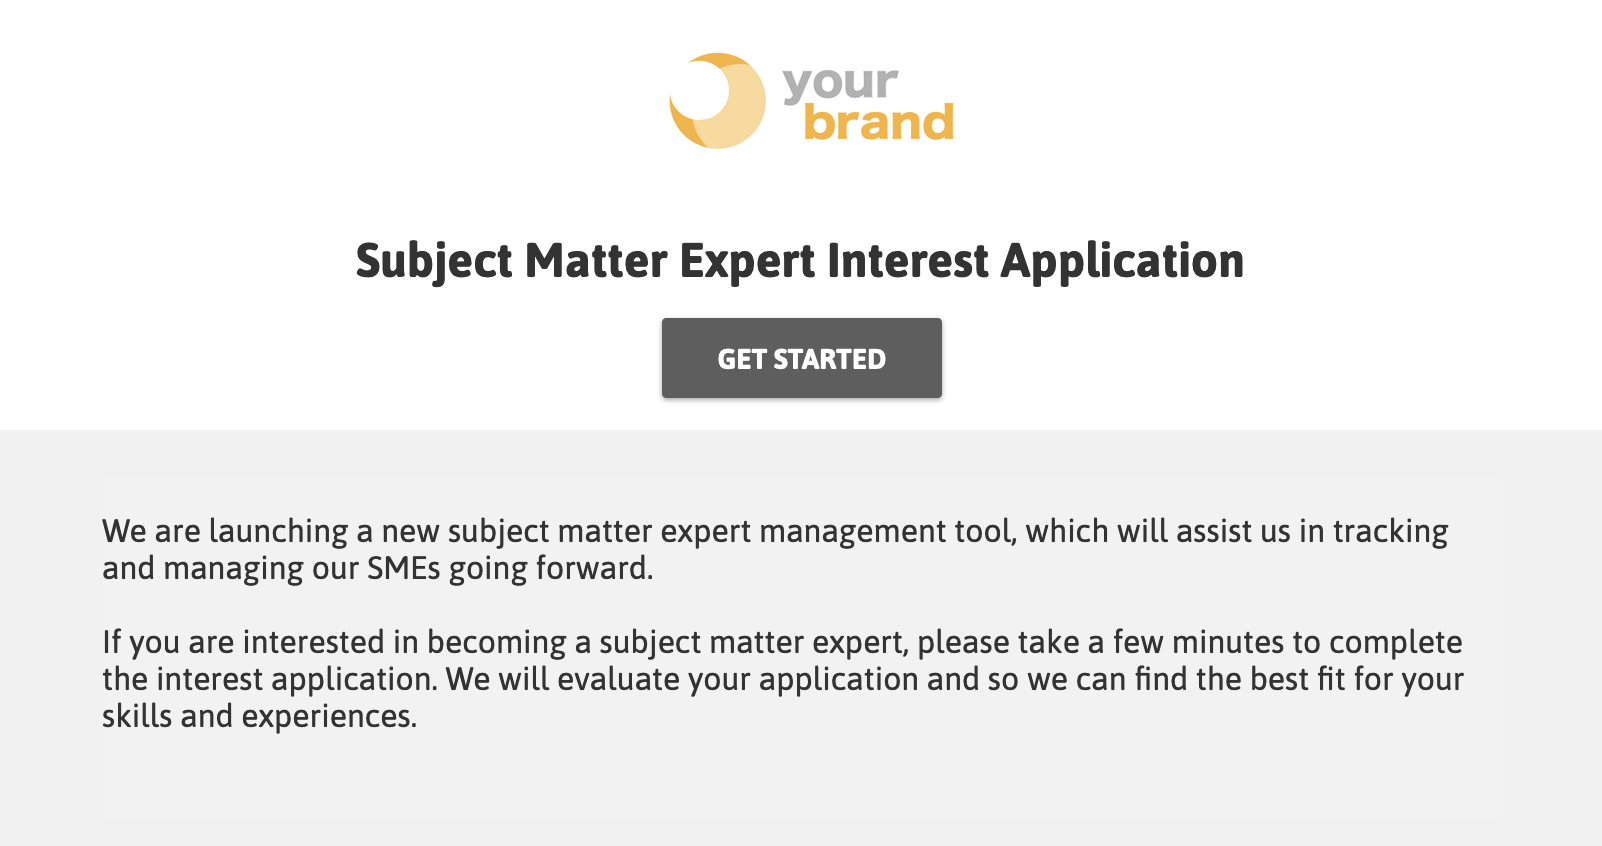 Application introduction